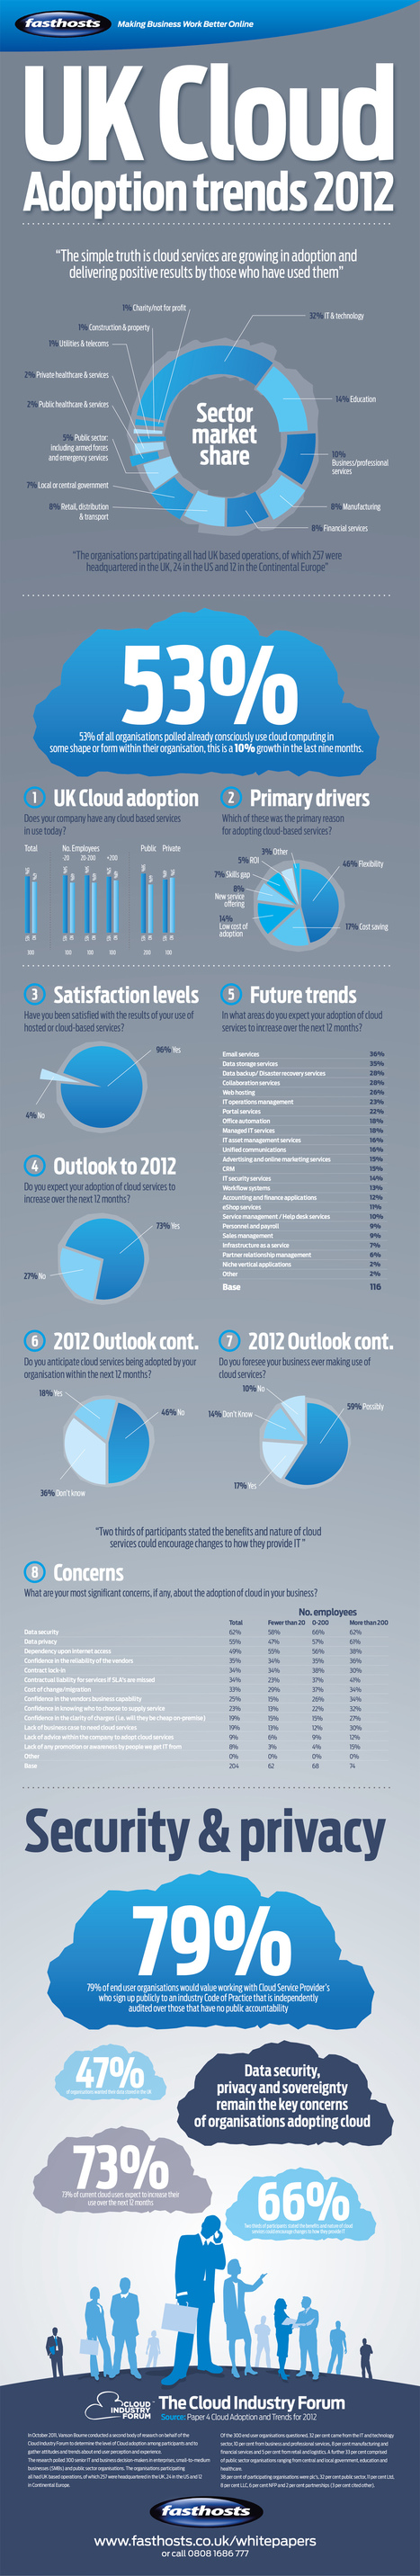 INFOGRAPHIC: 2012 UK Cloud Adoption Trends | The Cloud Infographic | Cloud Central | Scoop.it